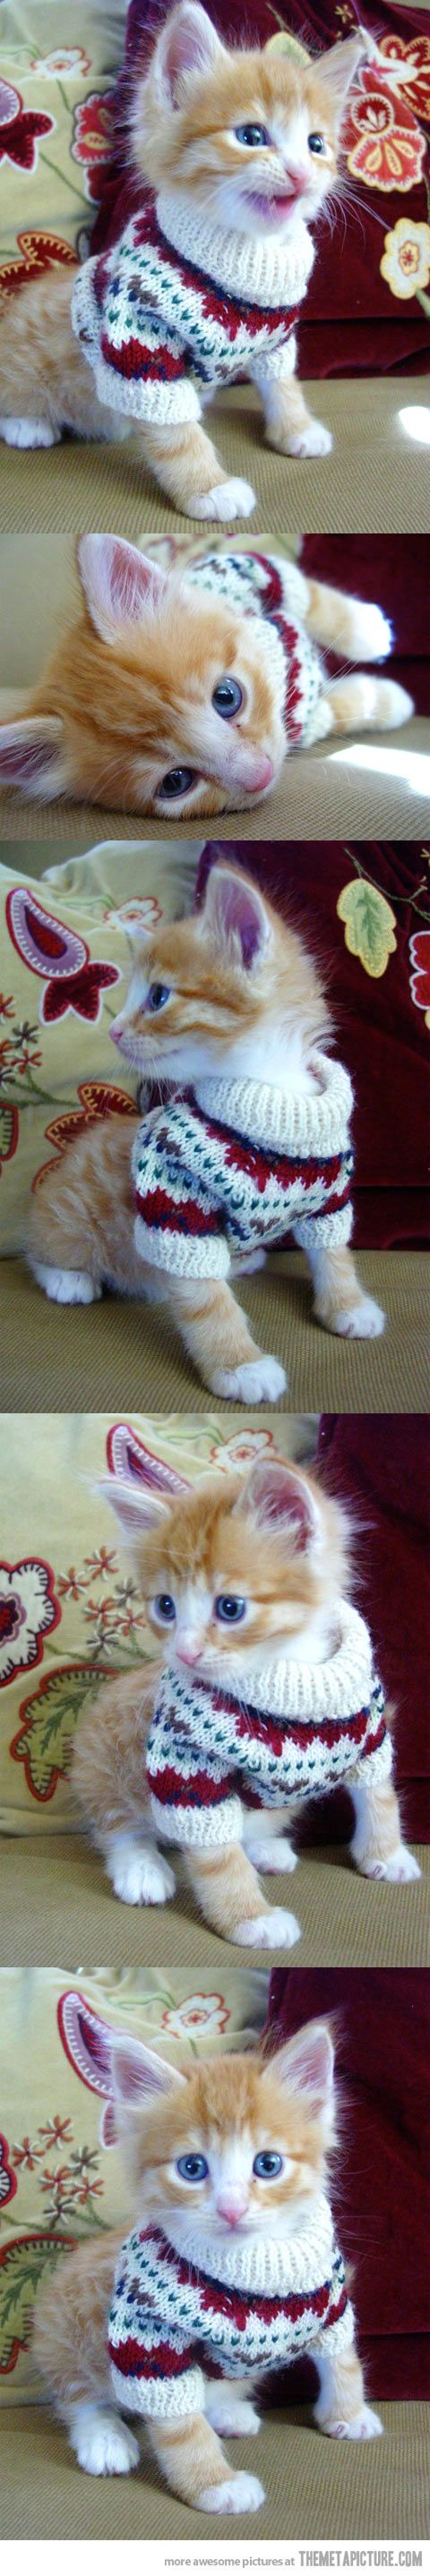 Cat in a sweater is so cute. I hate cats. But omg this is too cute :O I know I posted under my puppies board, but I have no where else to post it lol.